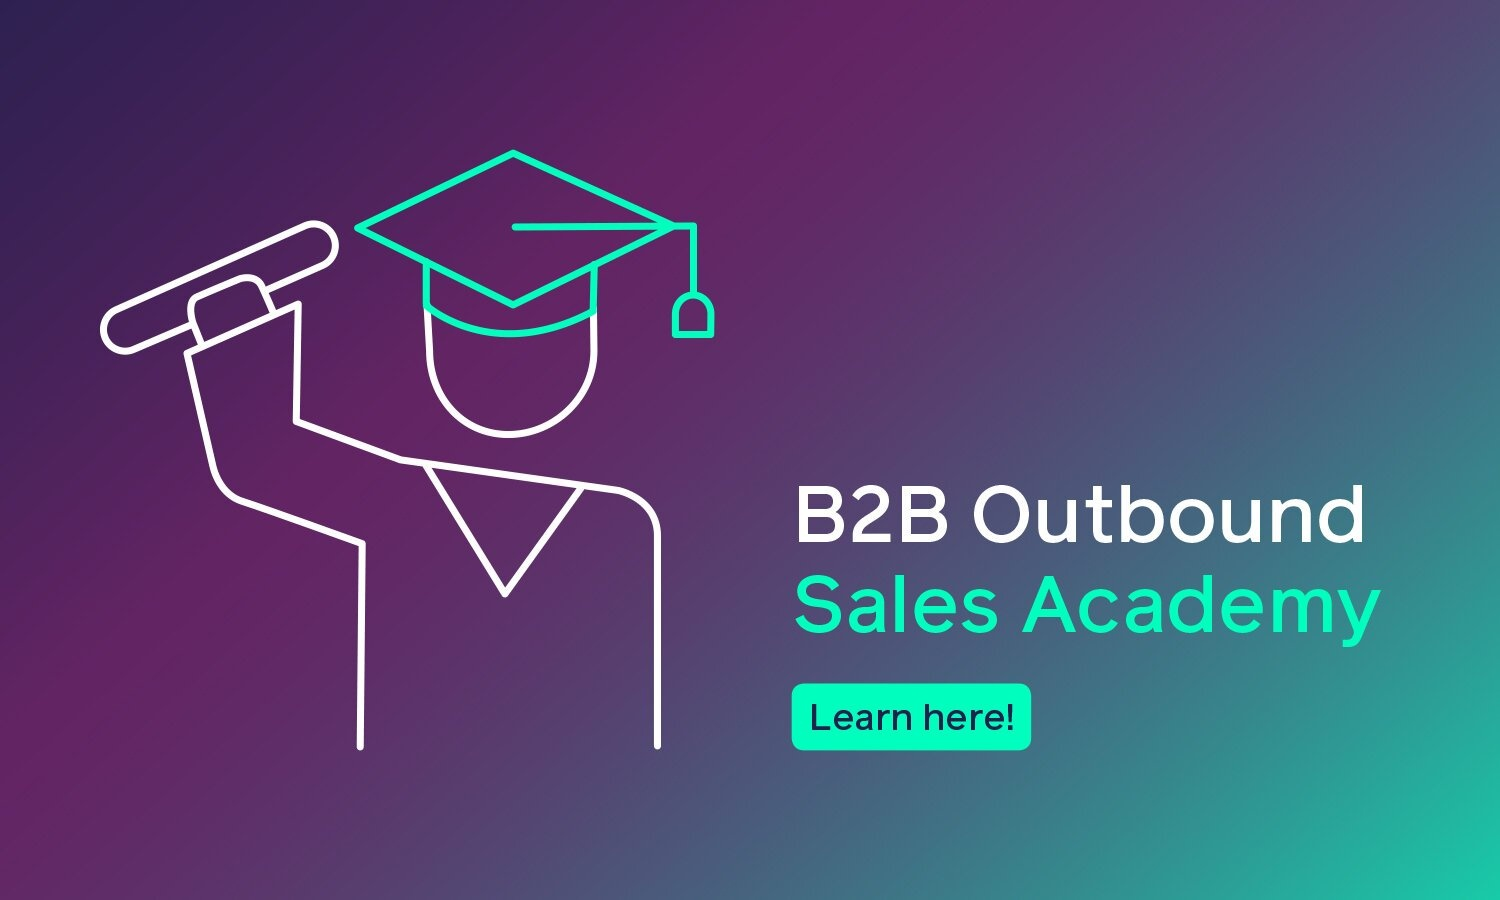 B2B Outbound Sales Academy